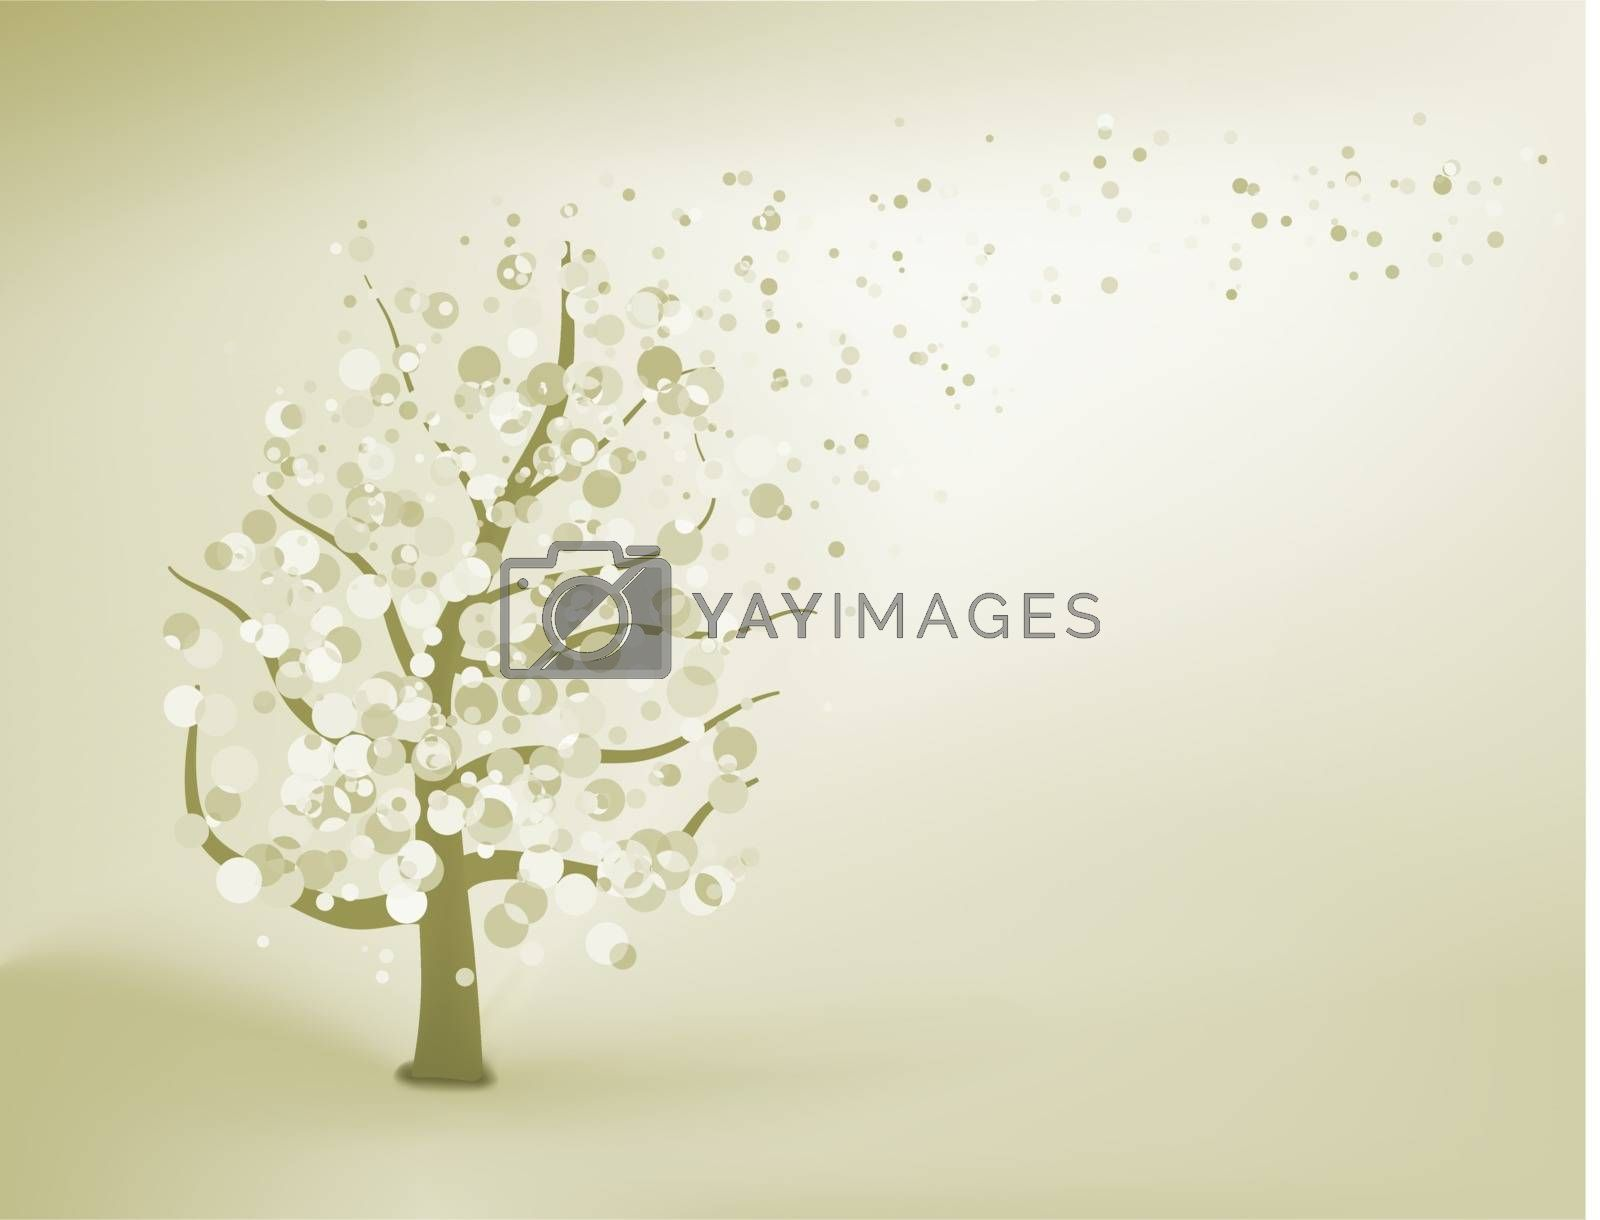 Abstract elegant tree. EPS 8 vector file included